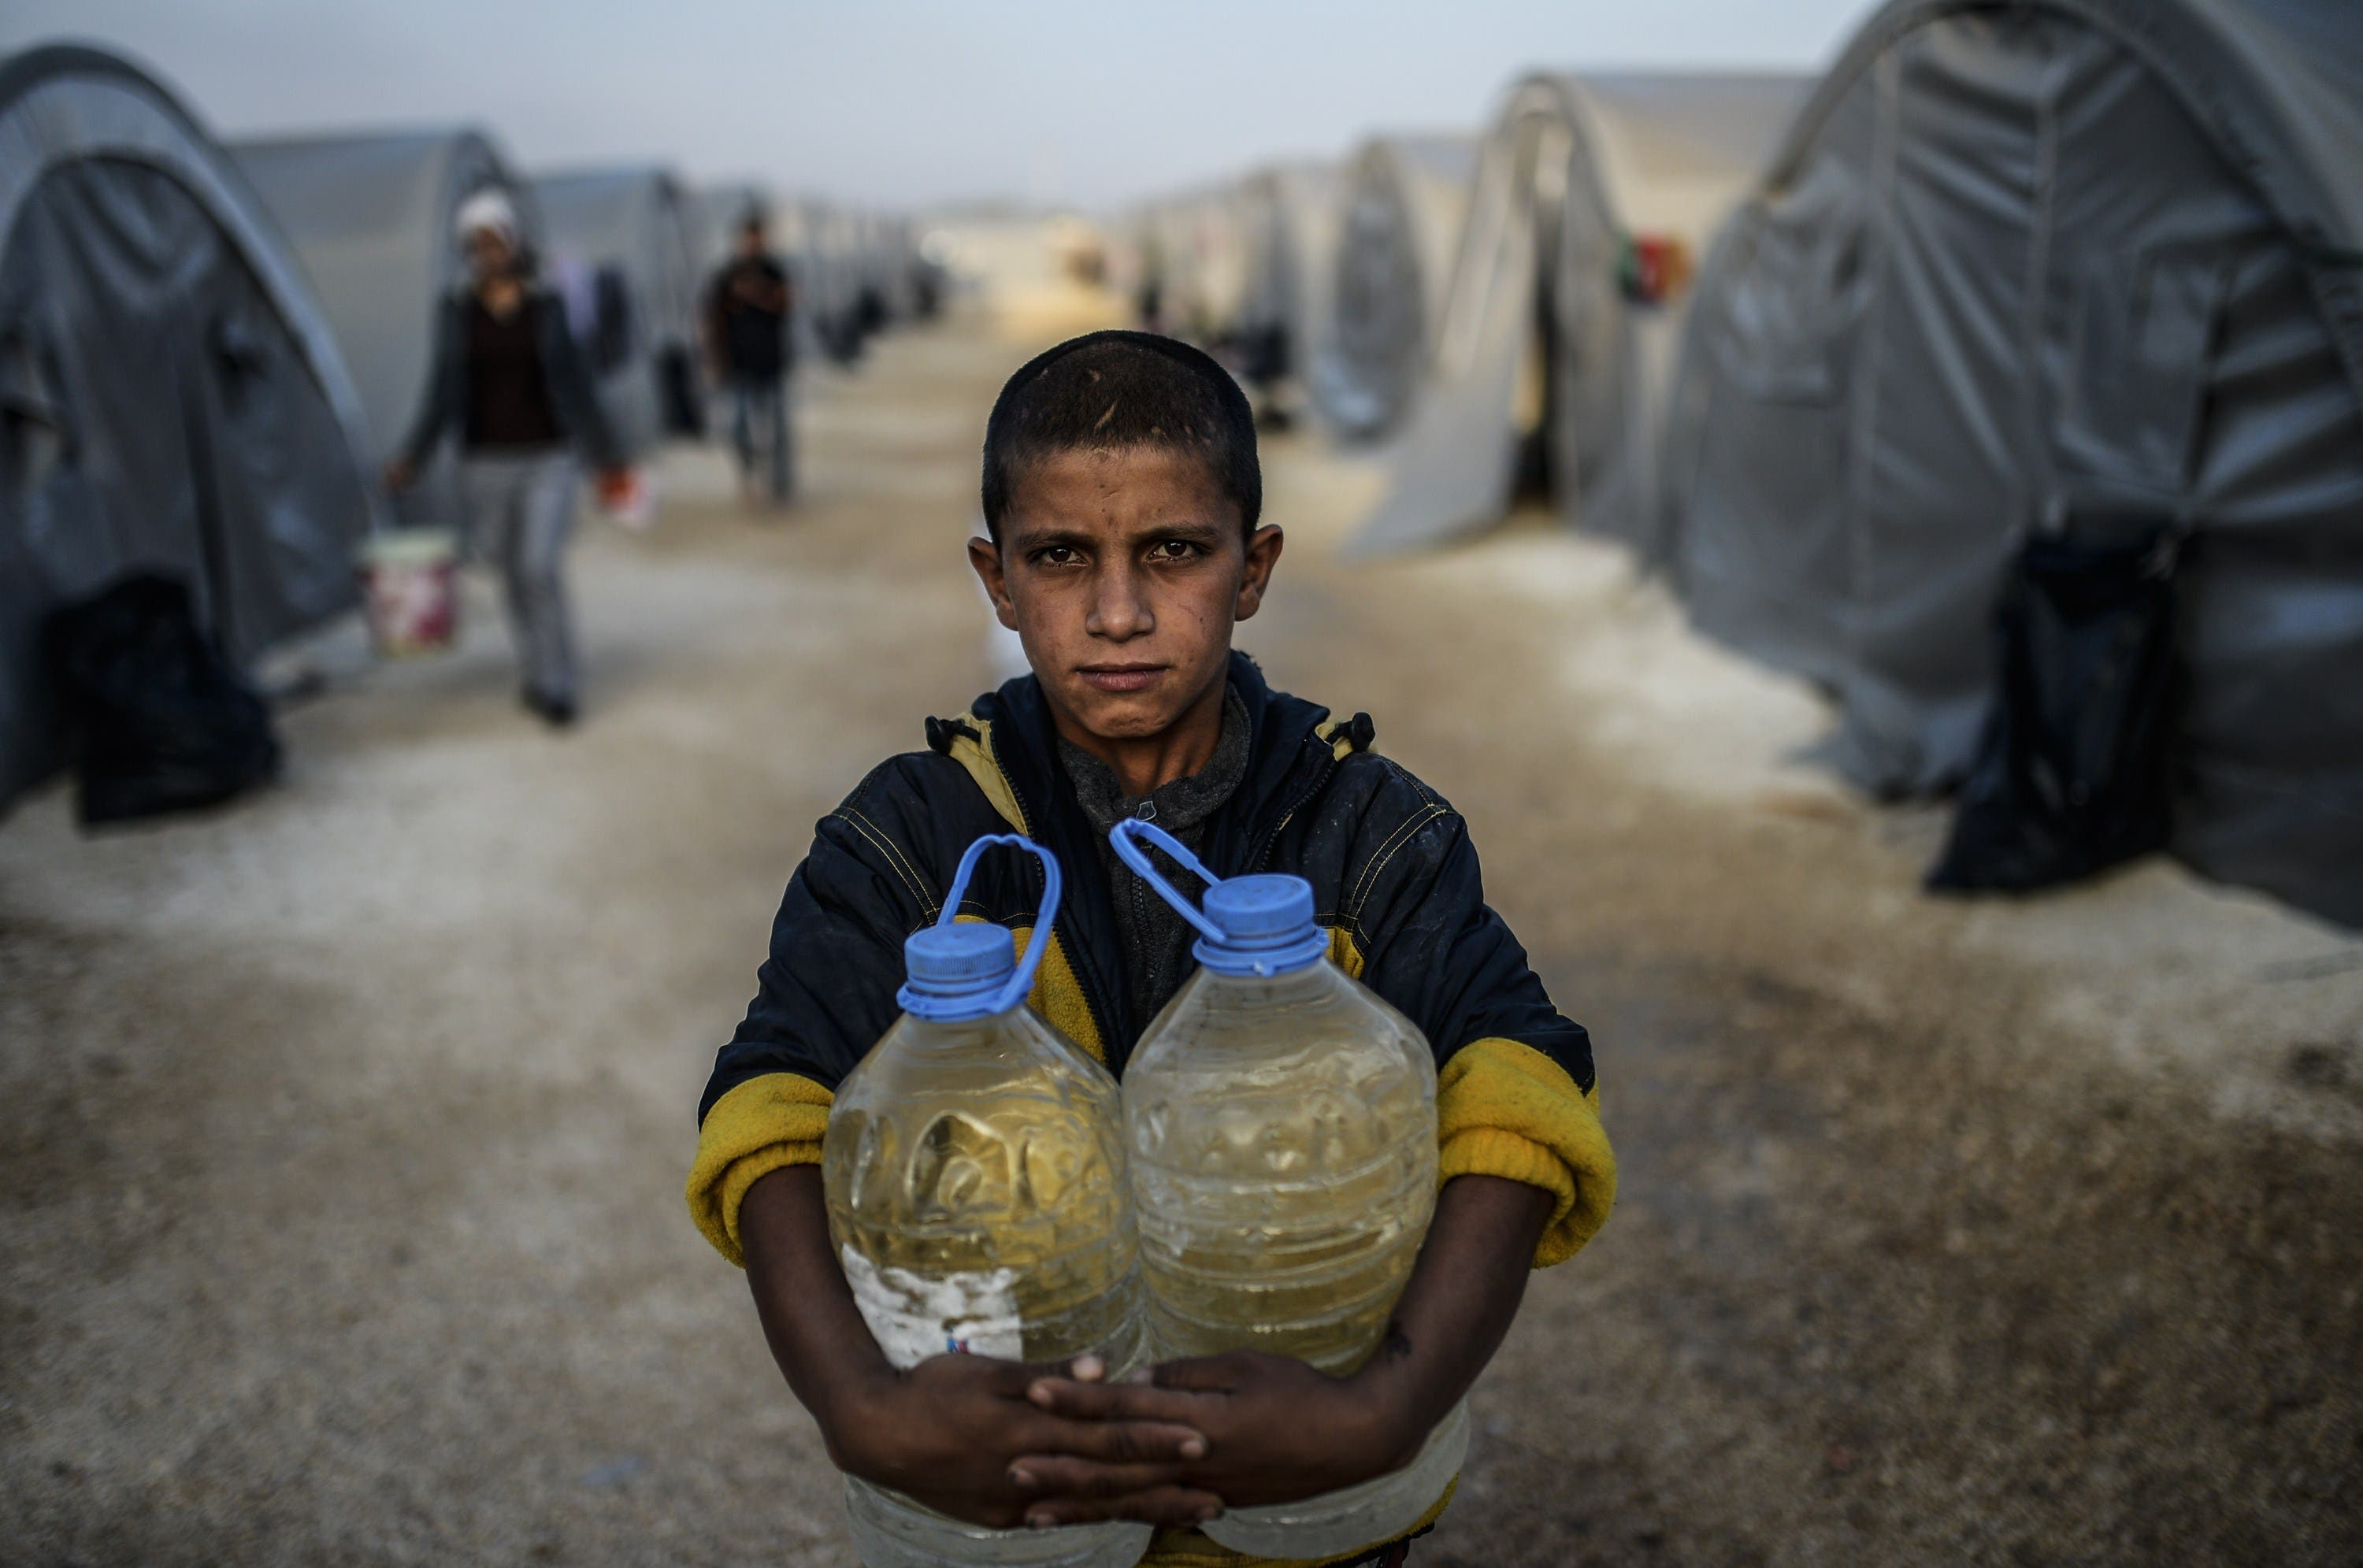 Kobane refugees on the run from ISIS